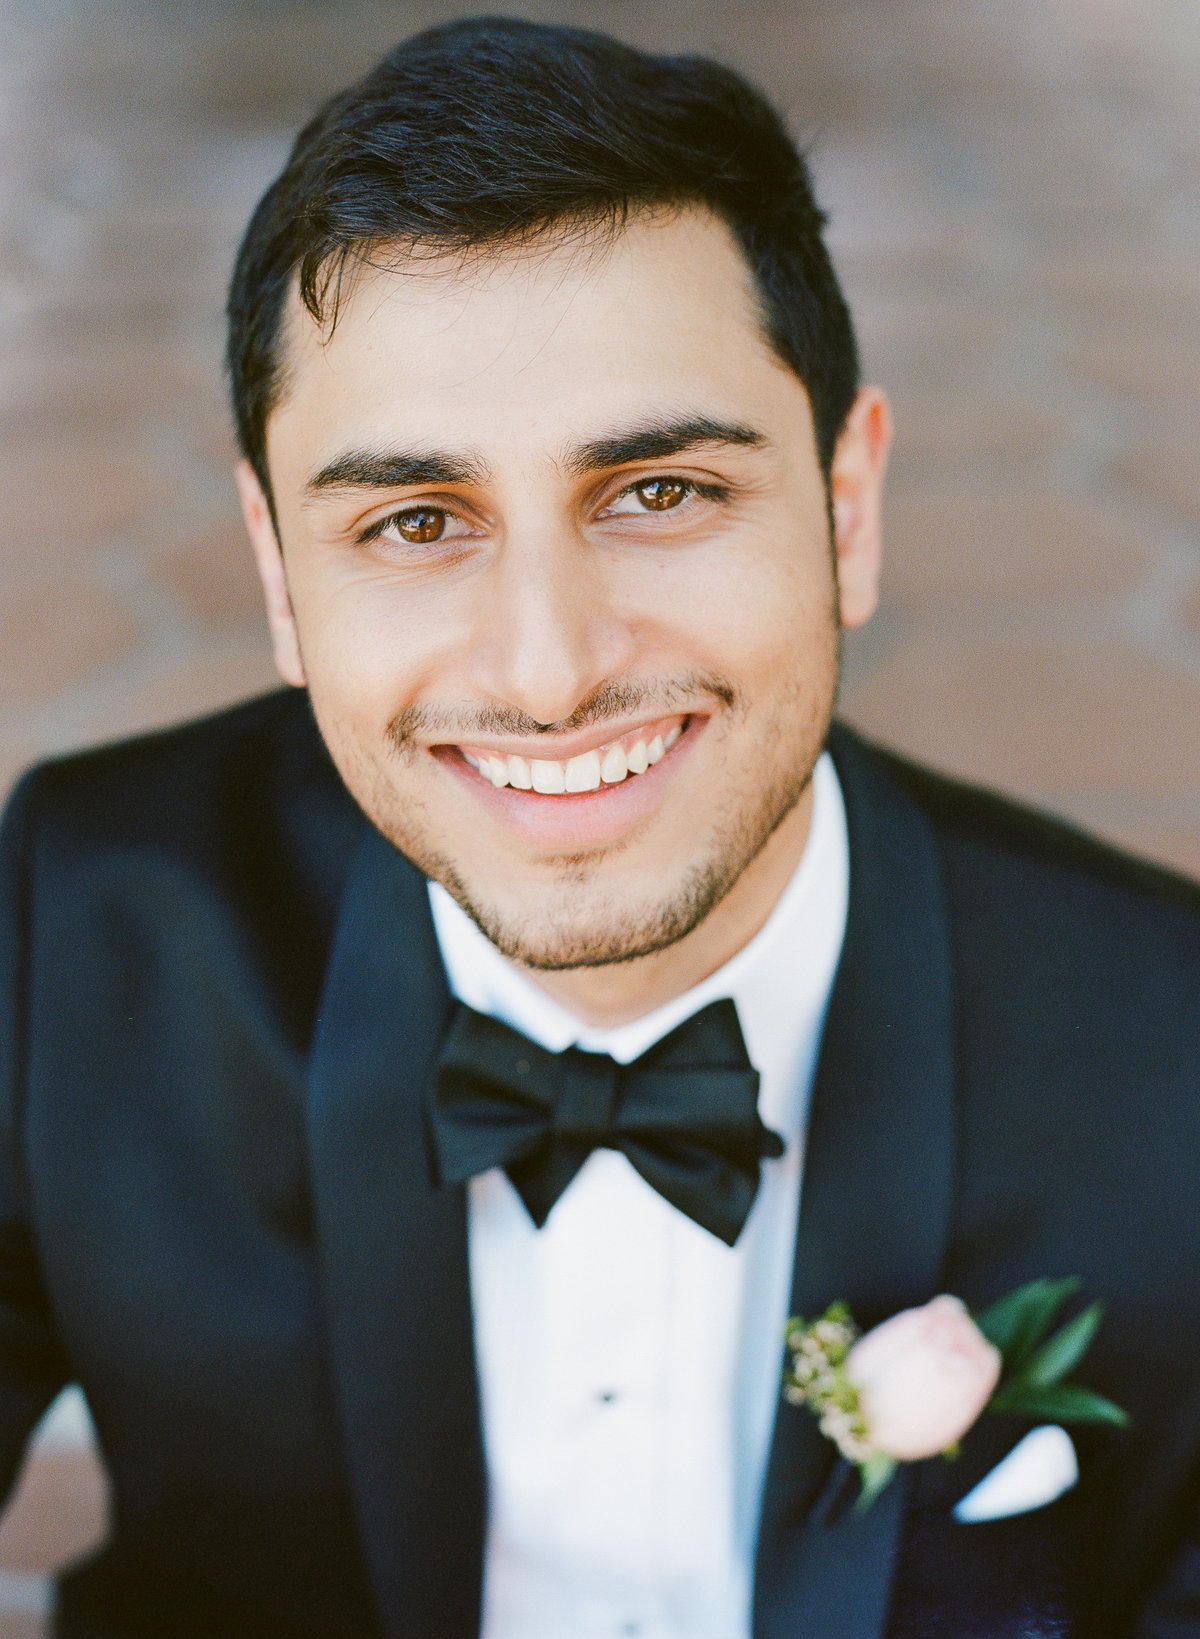 sasha-aneesh-wedding-bride-groom-armenian-77